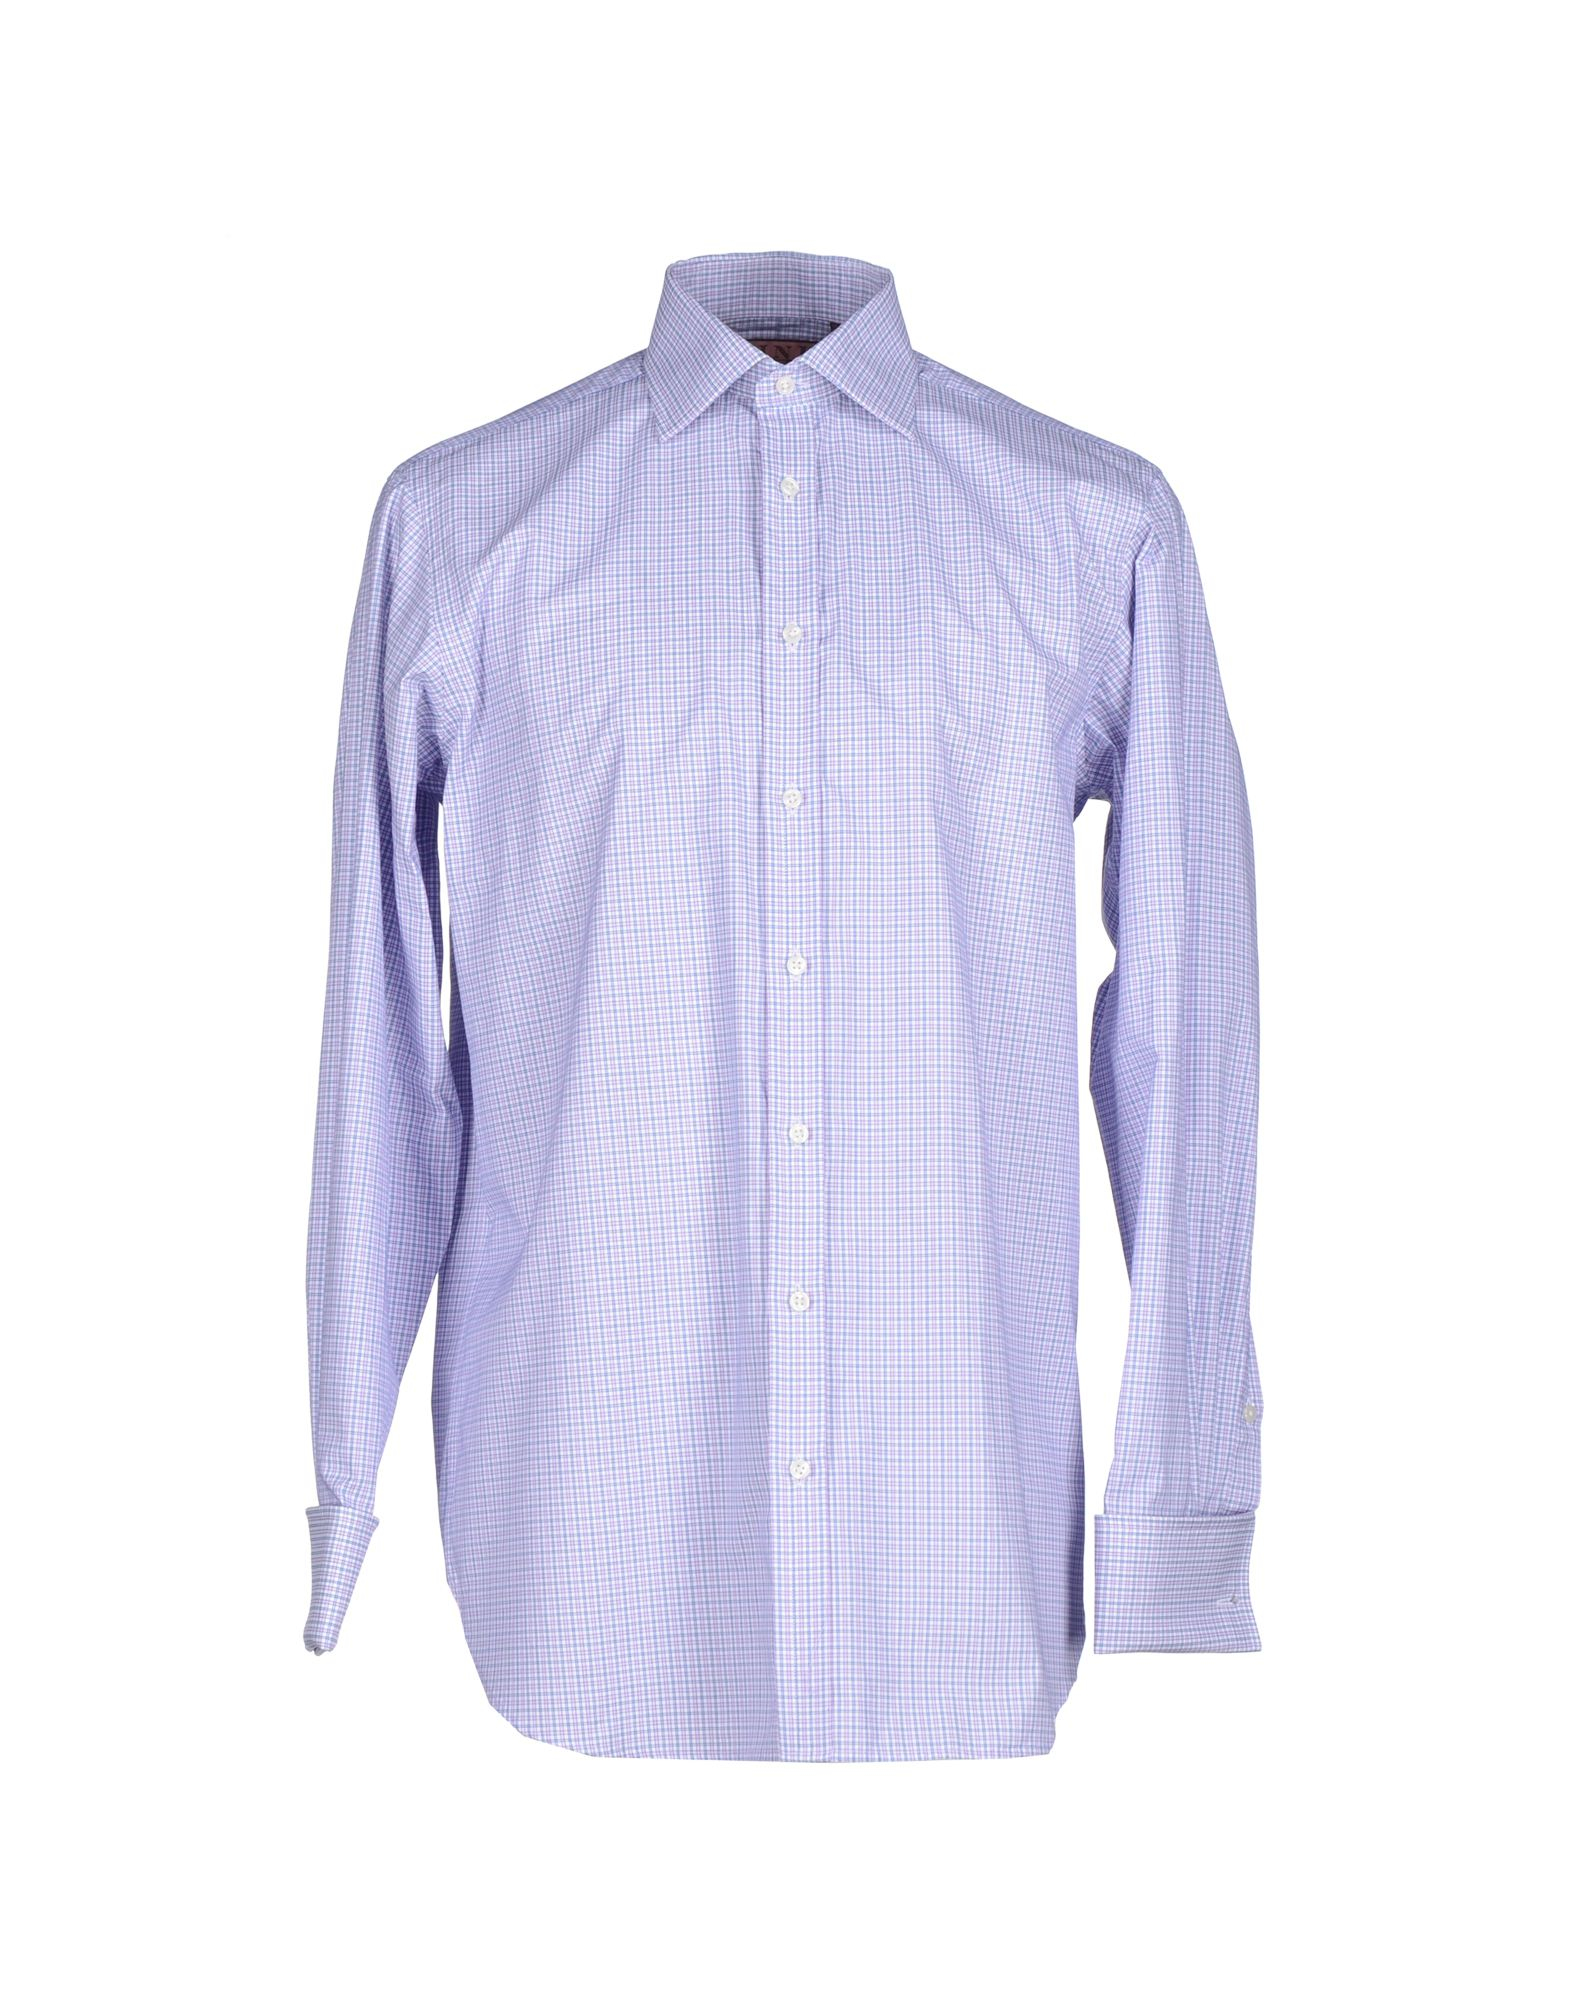 Lyst thomas pink shirt in purple for men for Mens pink shirts uk